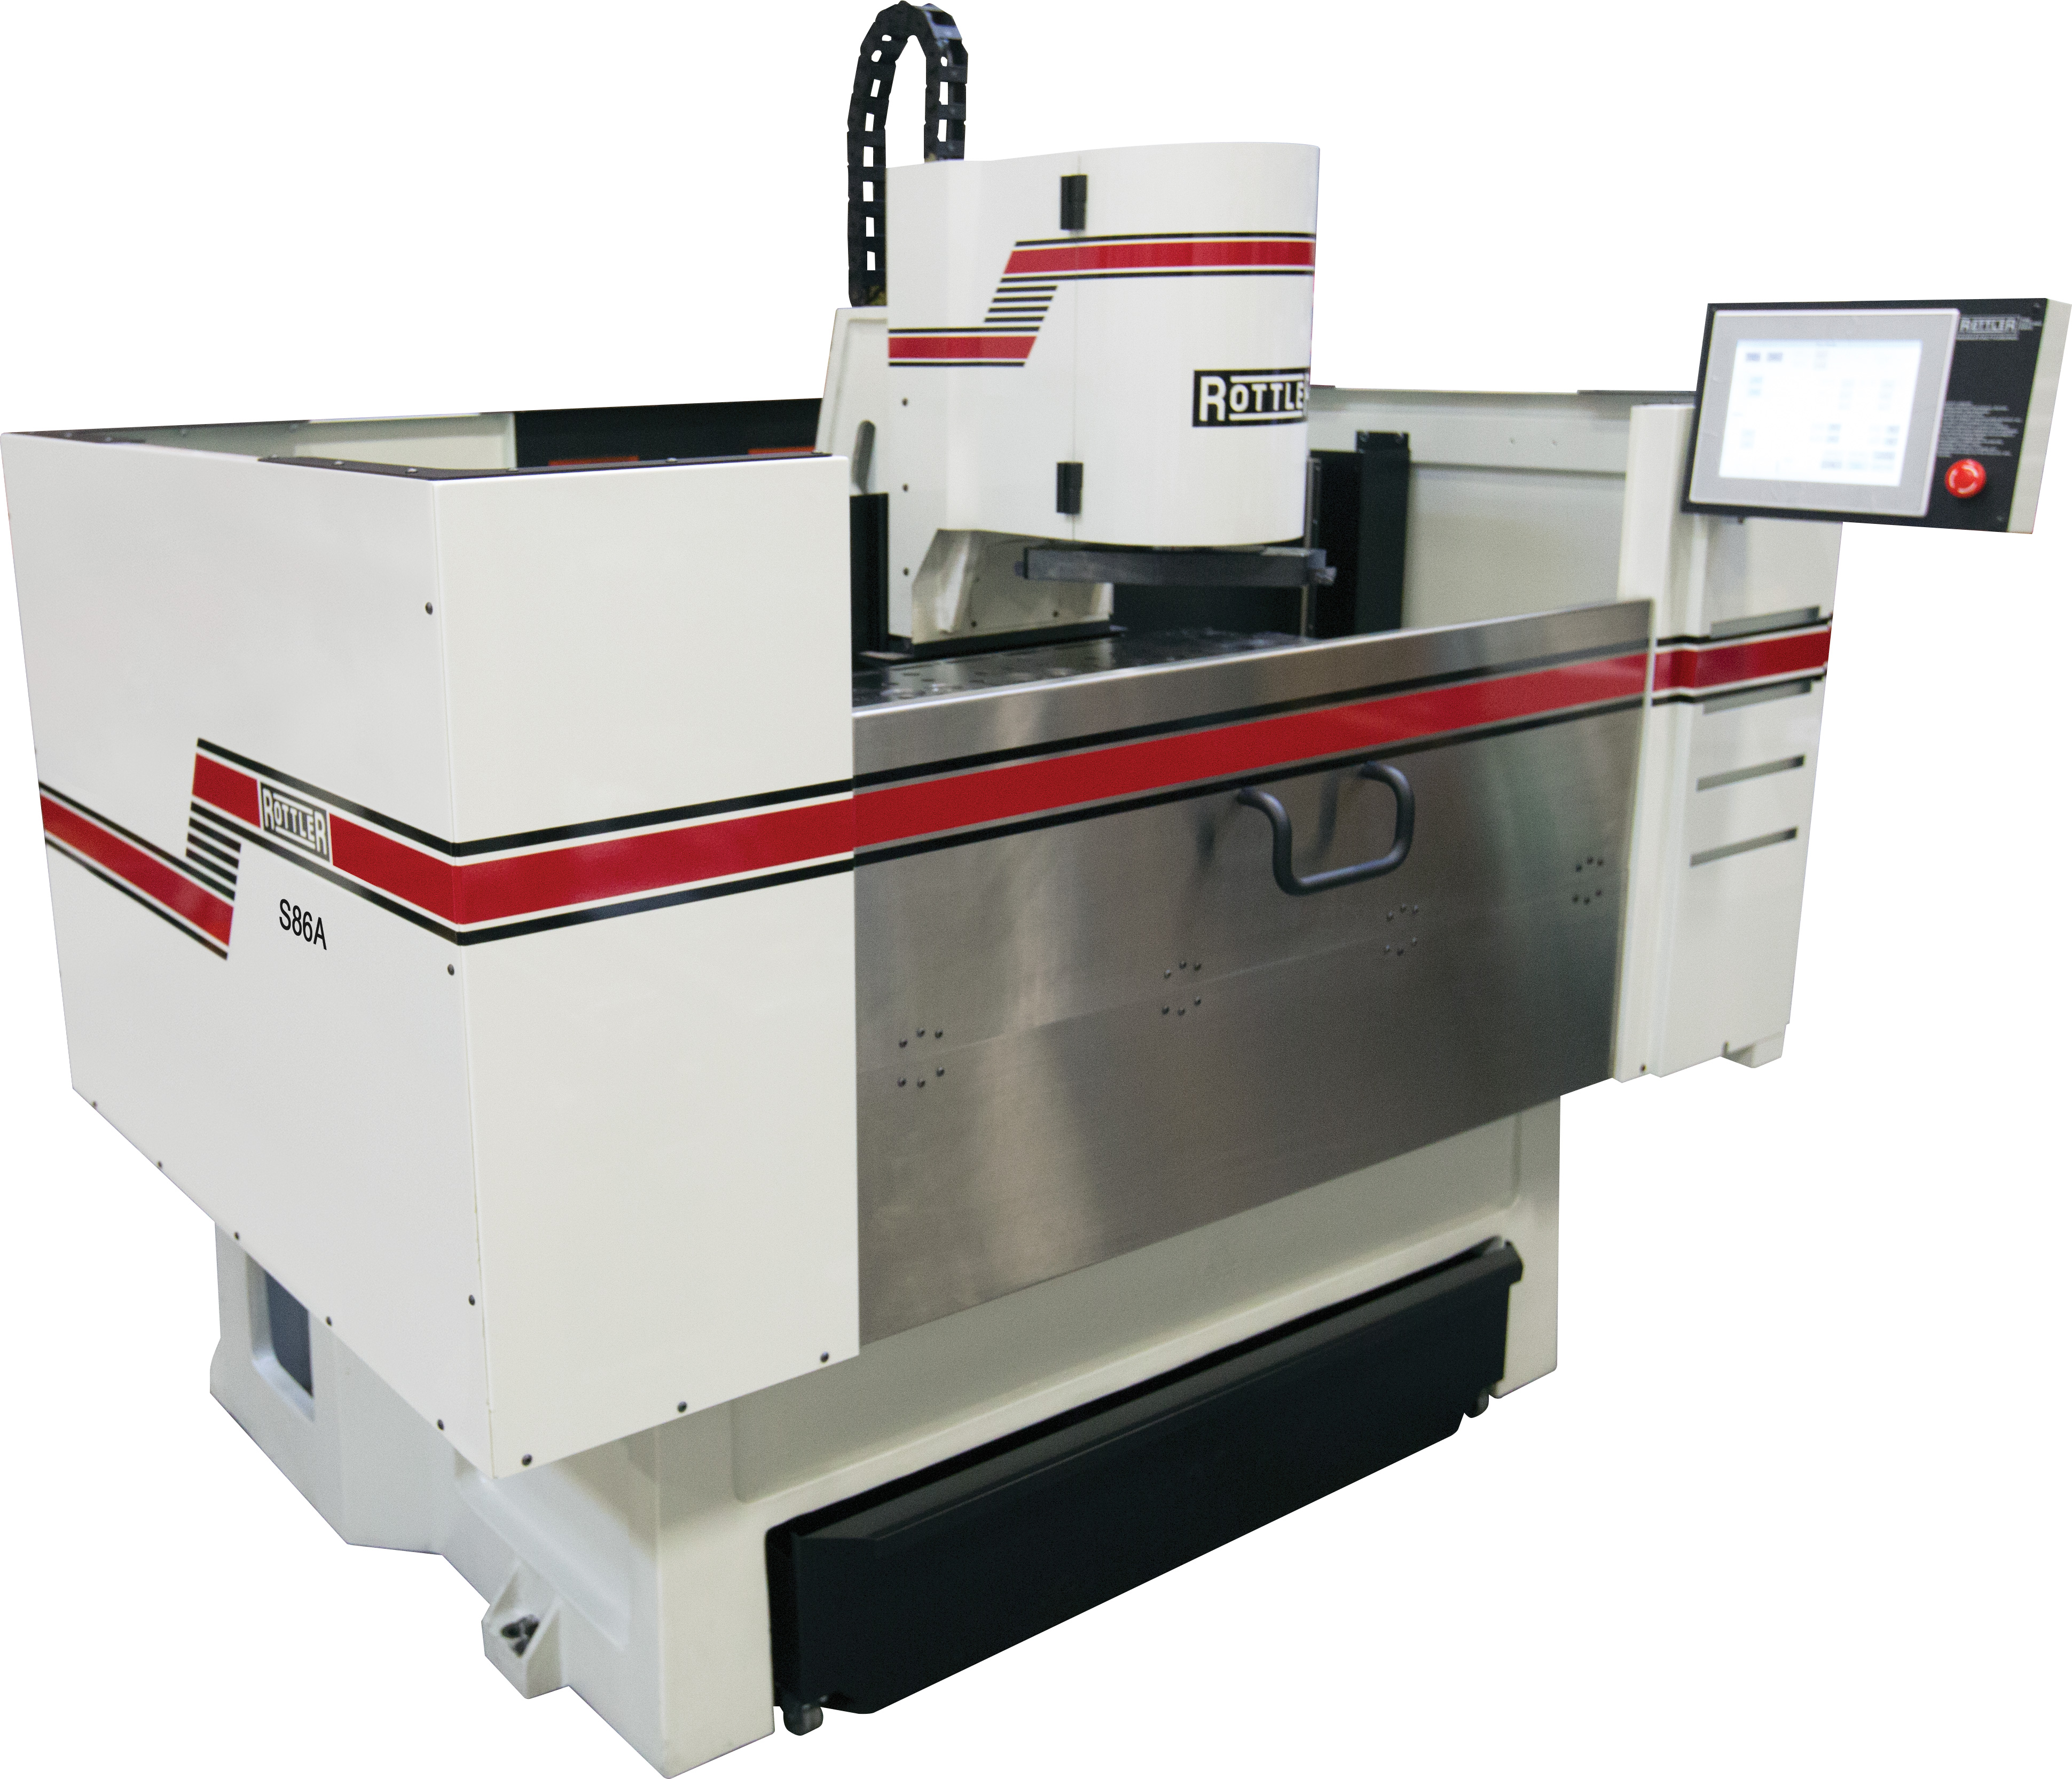 25.現在 automatic control surfacing machine.jpg